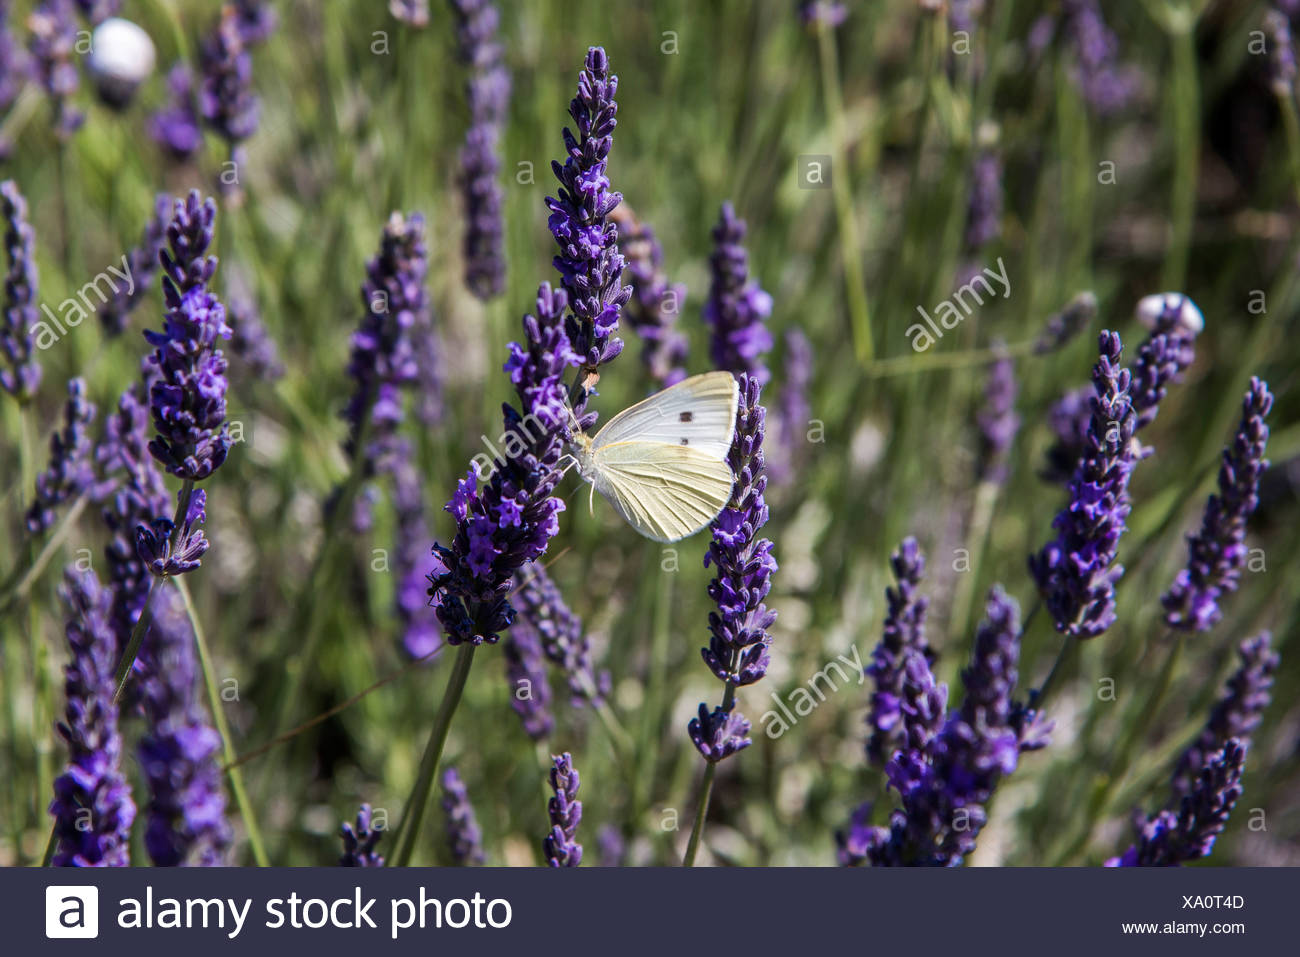 Clouded Apollo (Parnassius mnemosyne), butterfly on a lavender flower, Provence, Gréoux-les-Bains - Stock Image